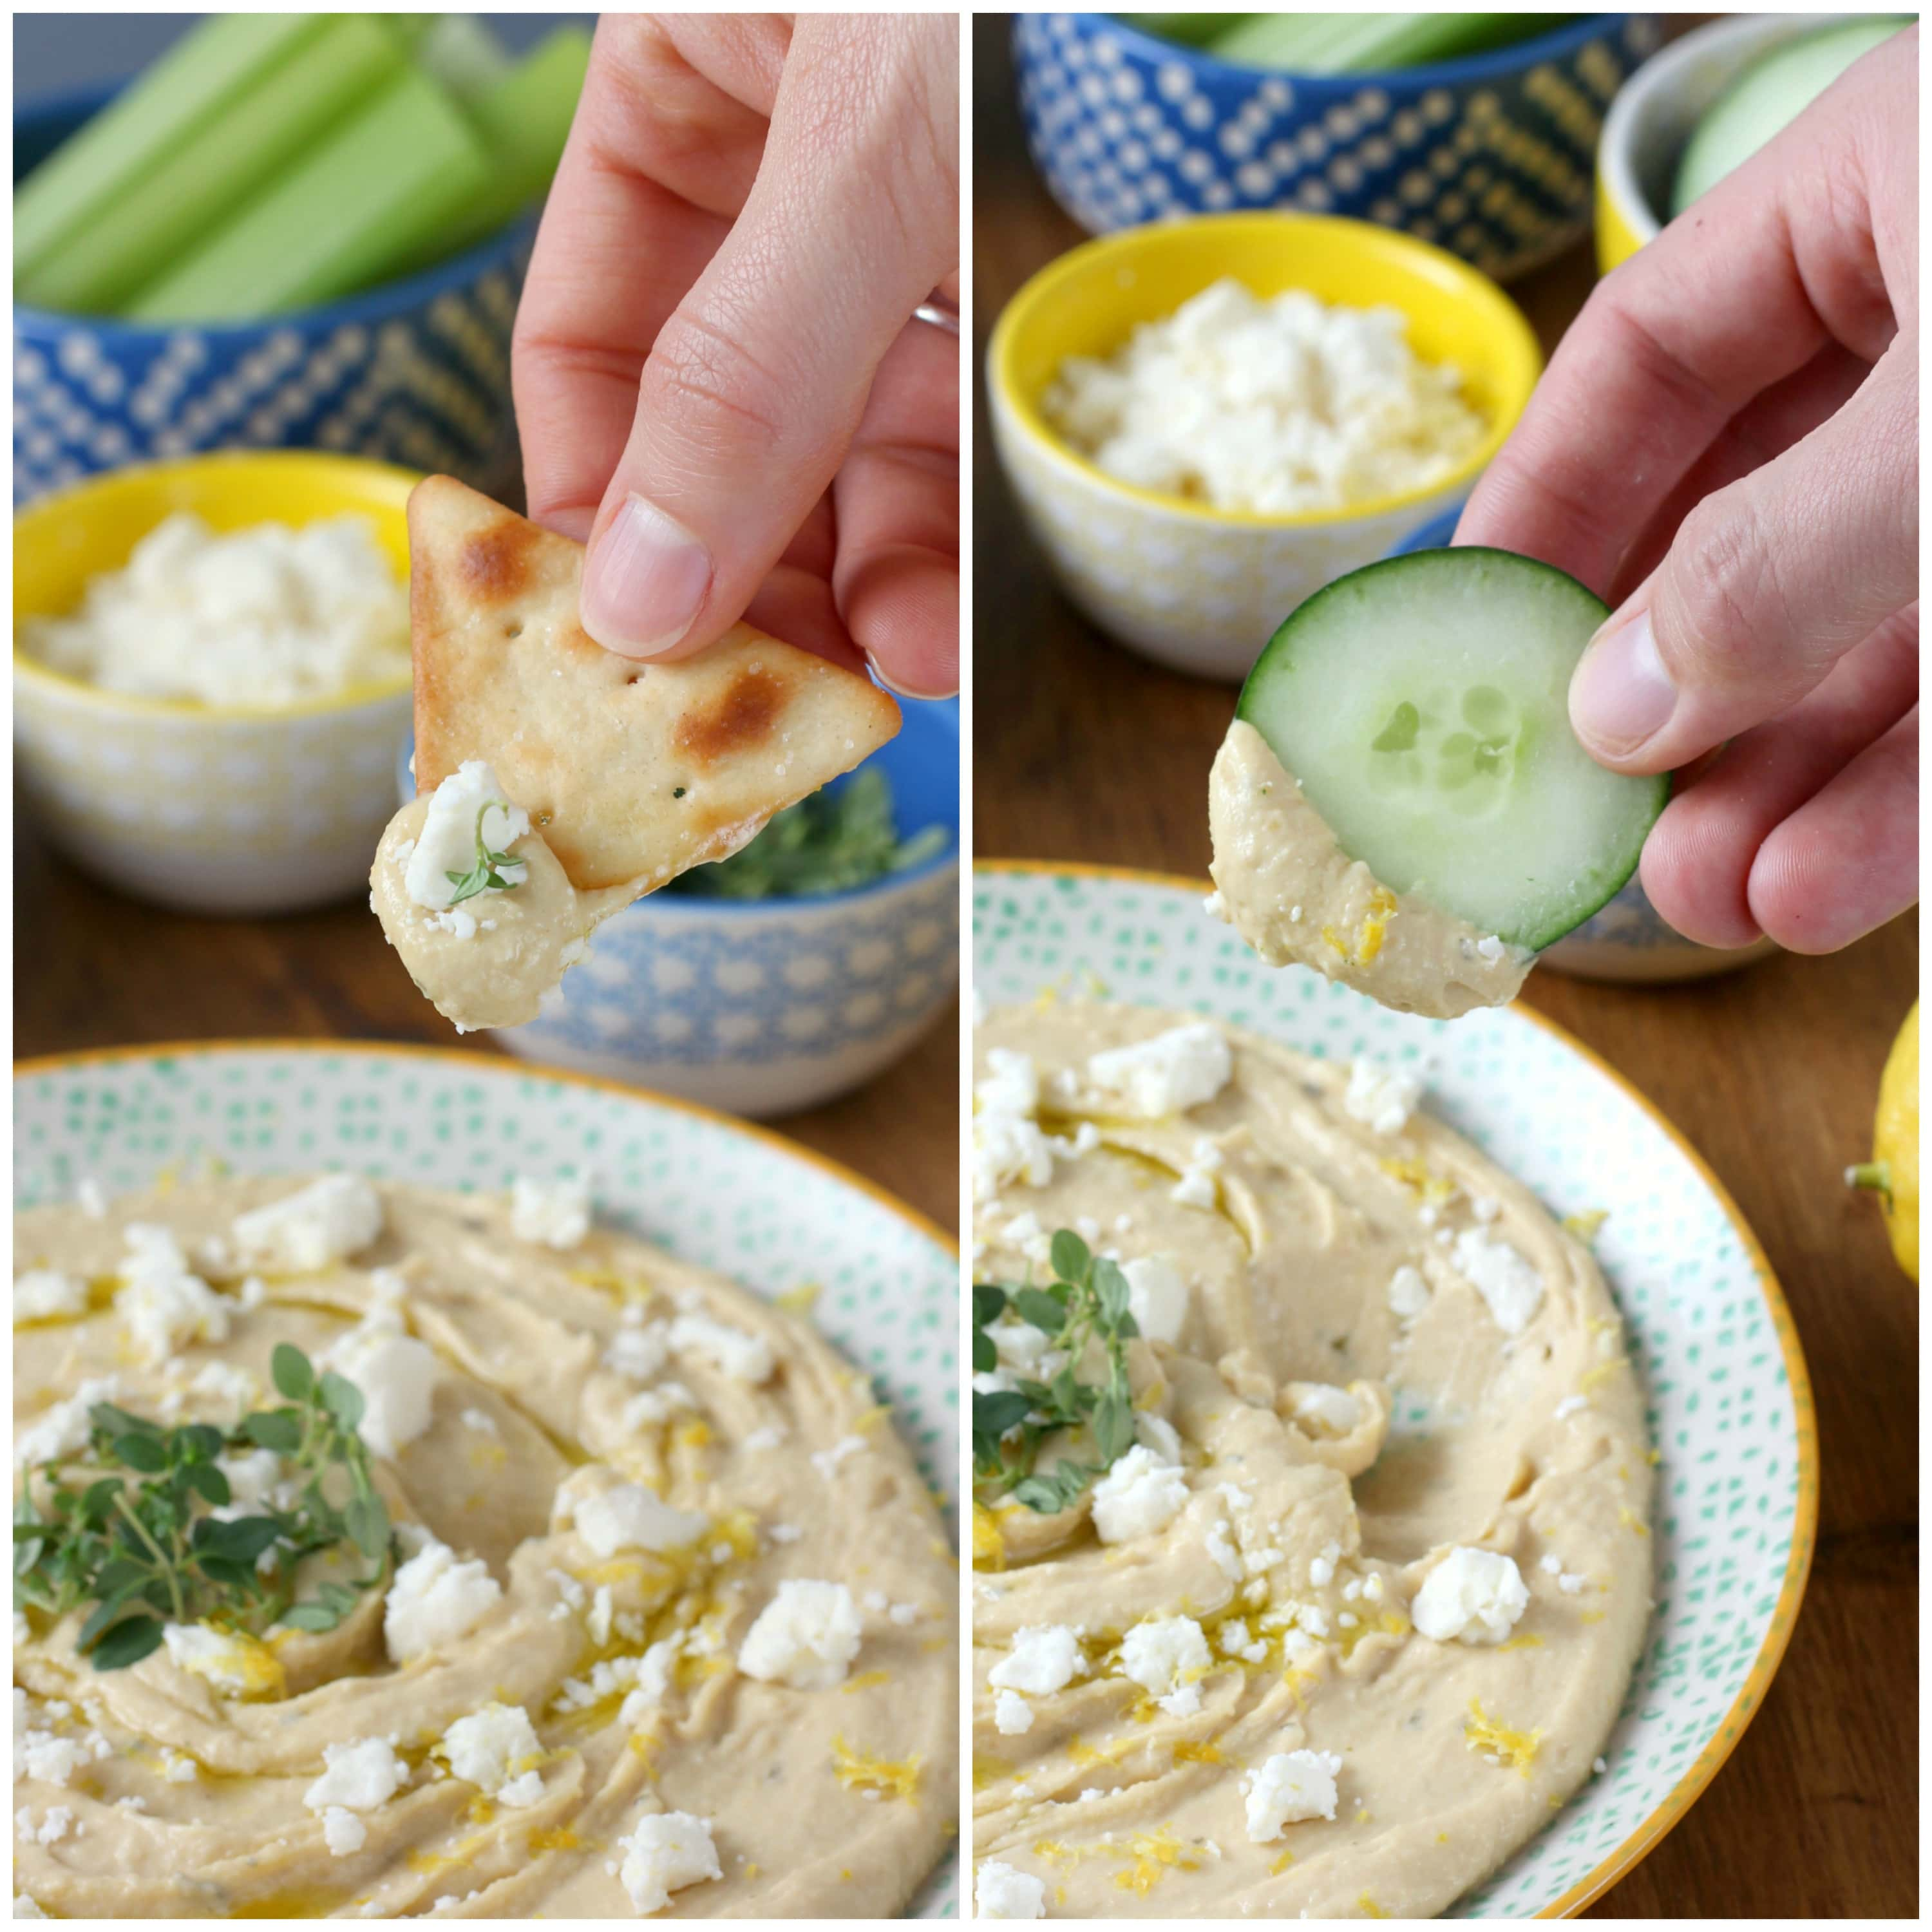 Lemon Thyme Hummus with Feta for a quick snack